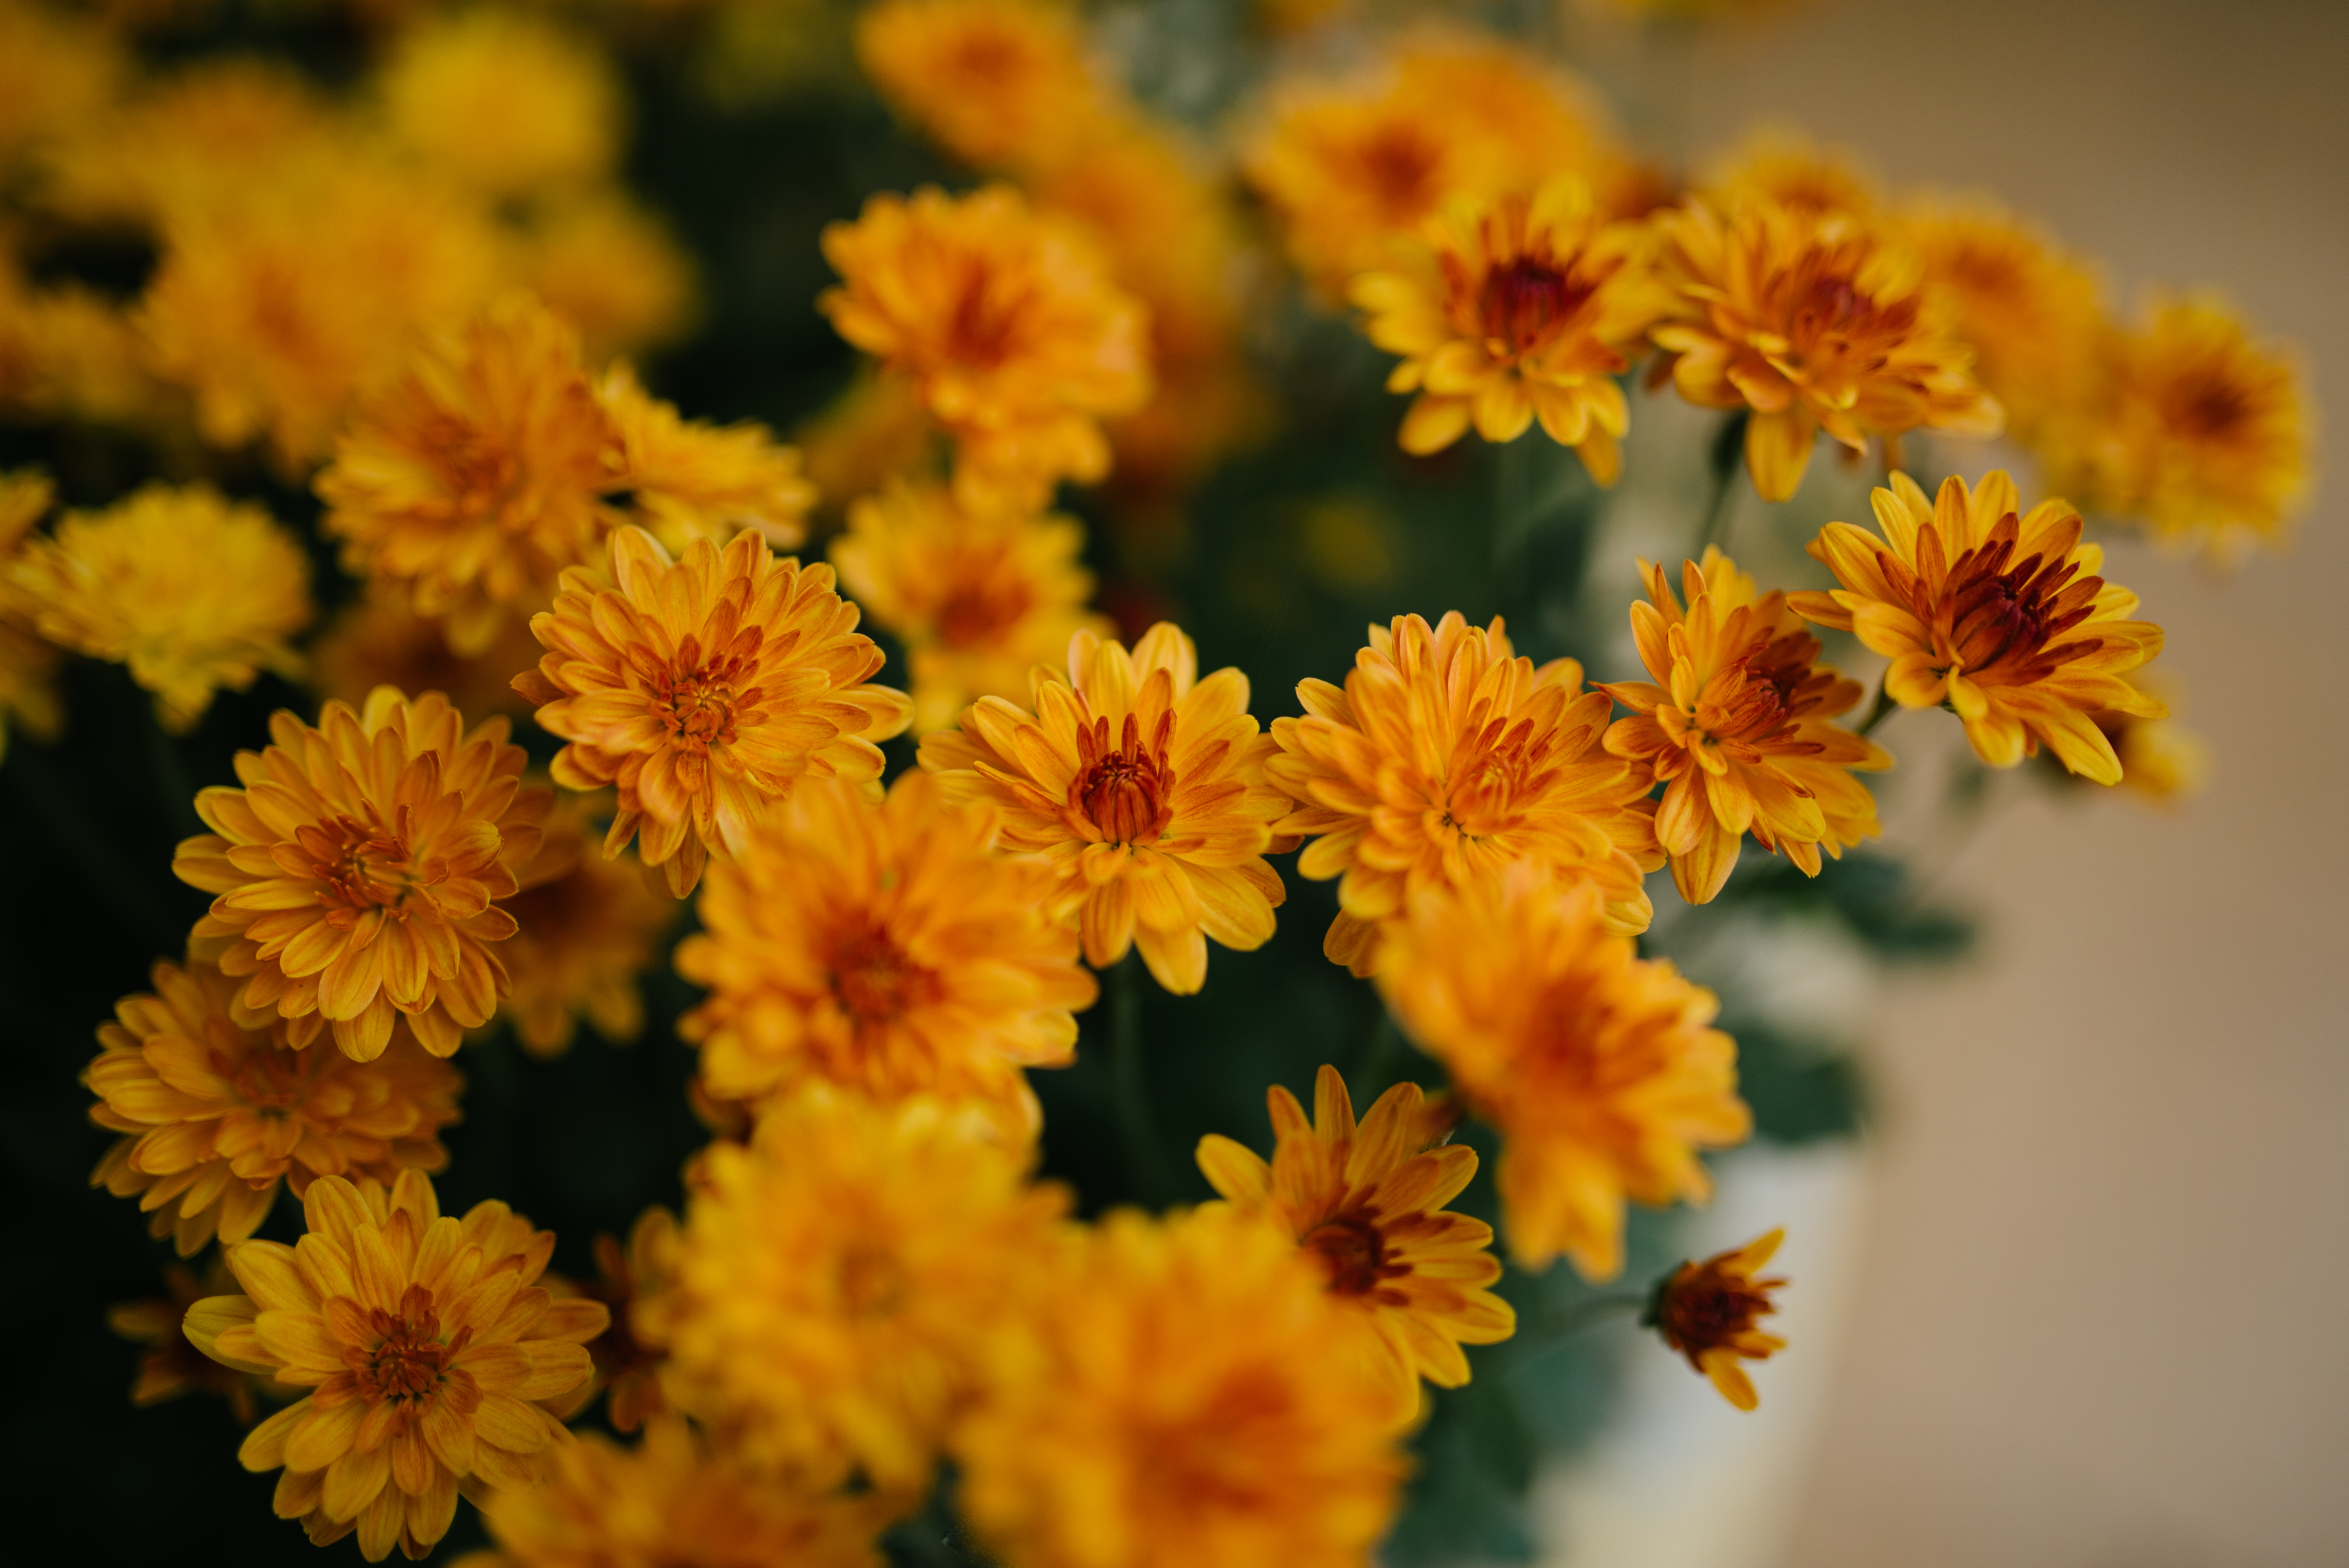 55660 download wallpaper Flowers, Chrysanthemum, Bouquet screensavers and pictures for free